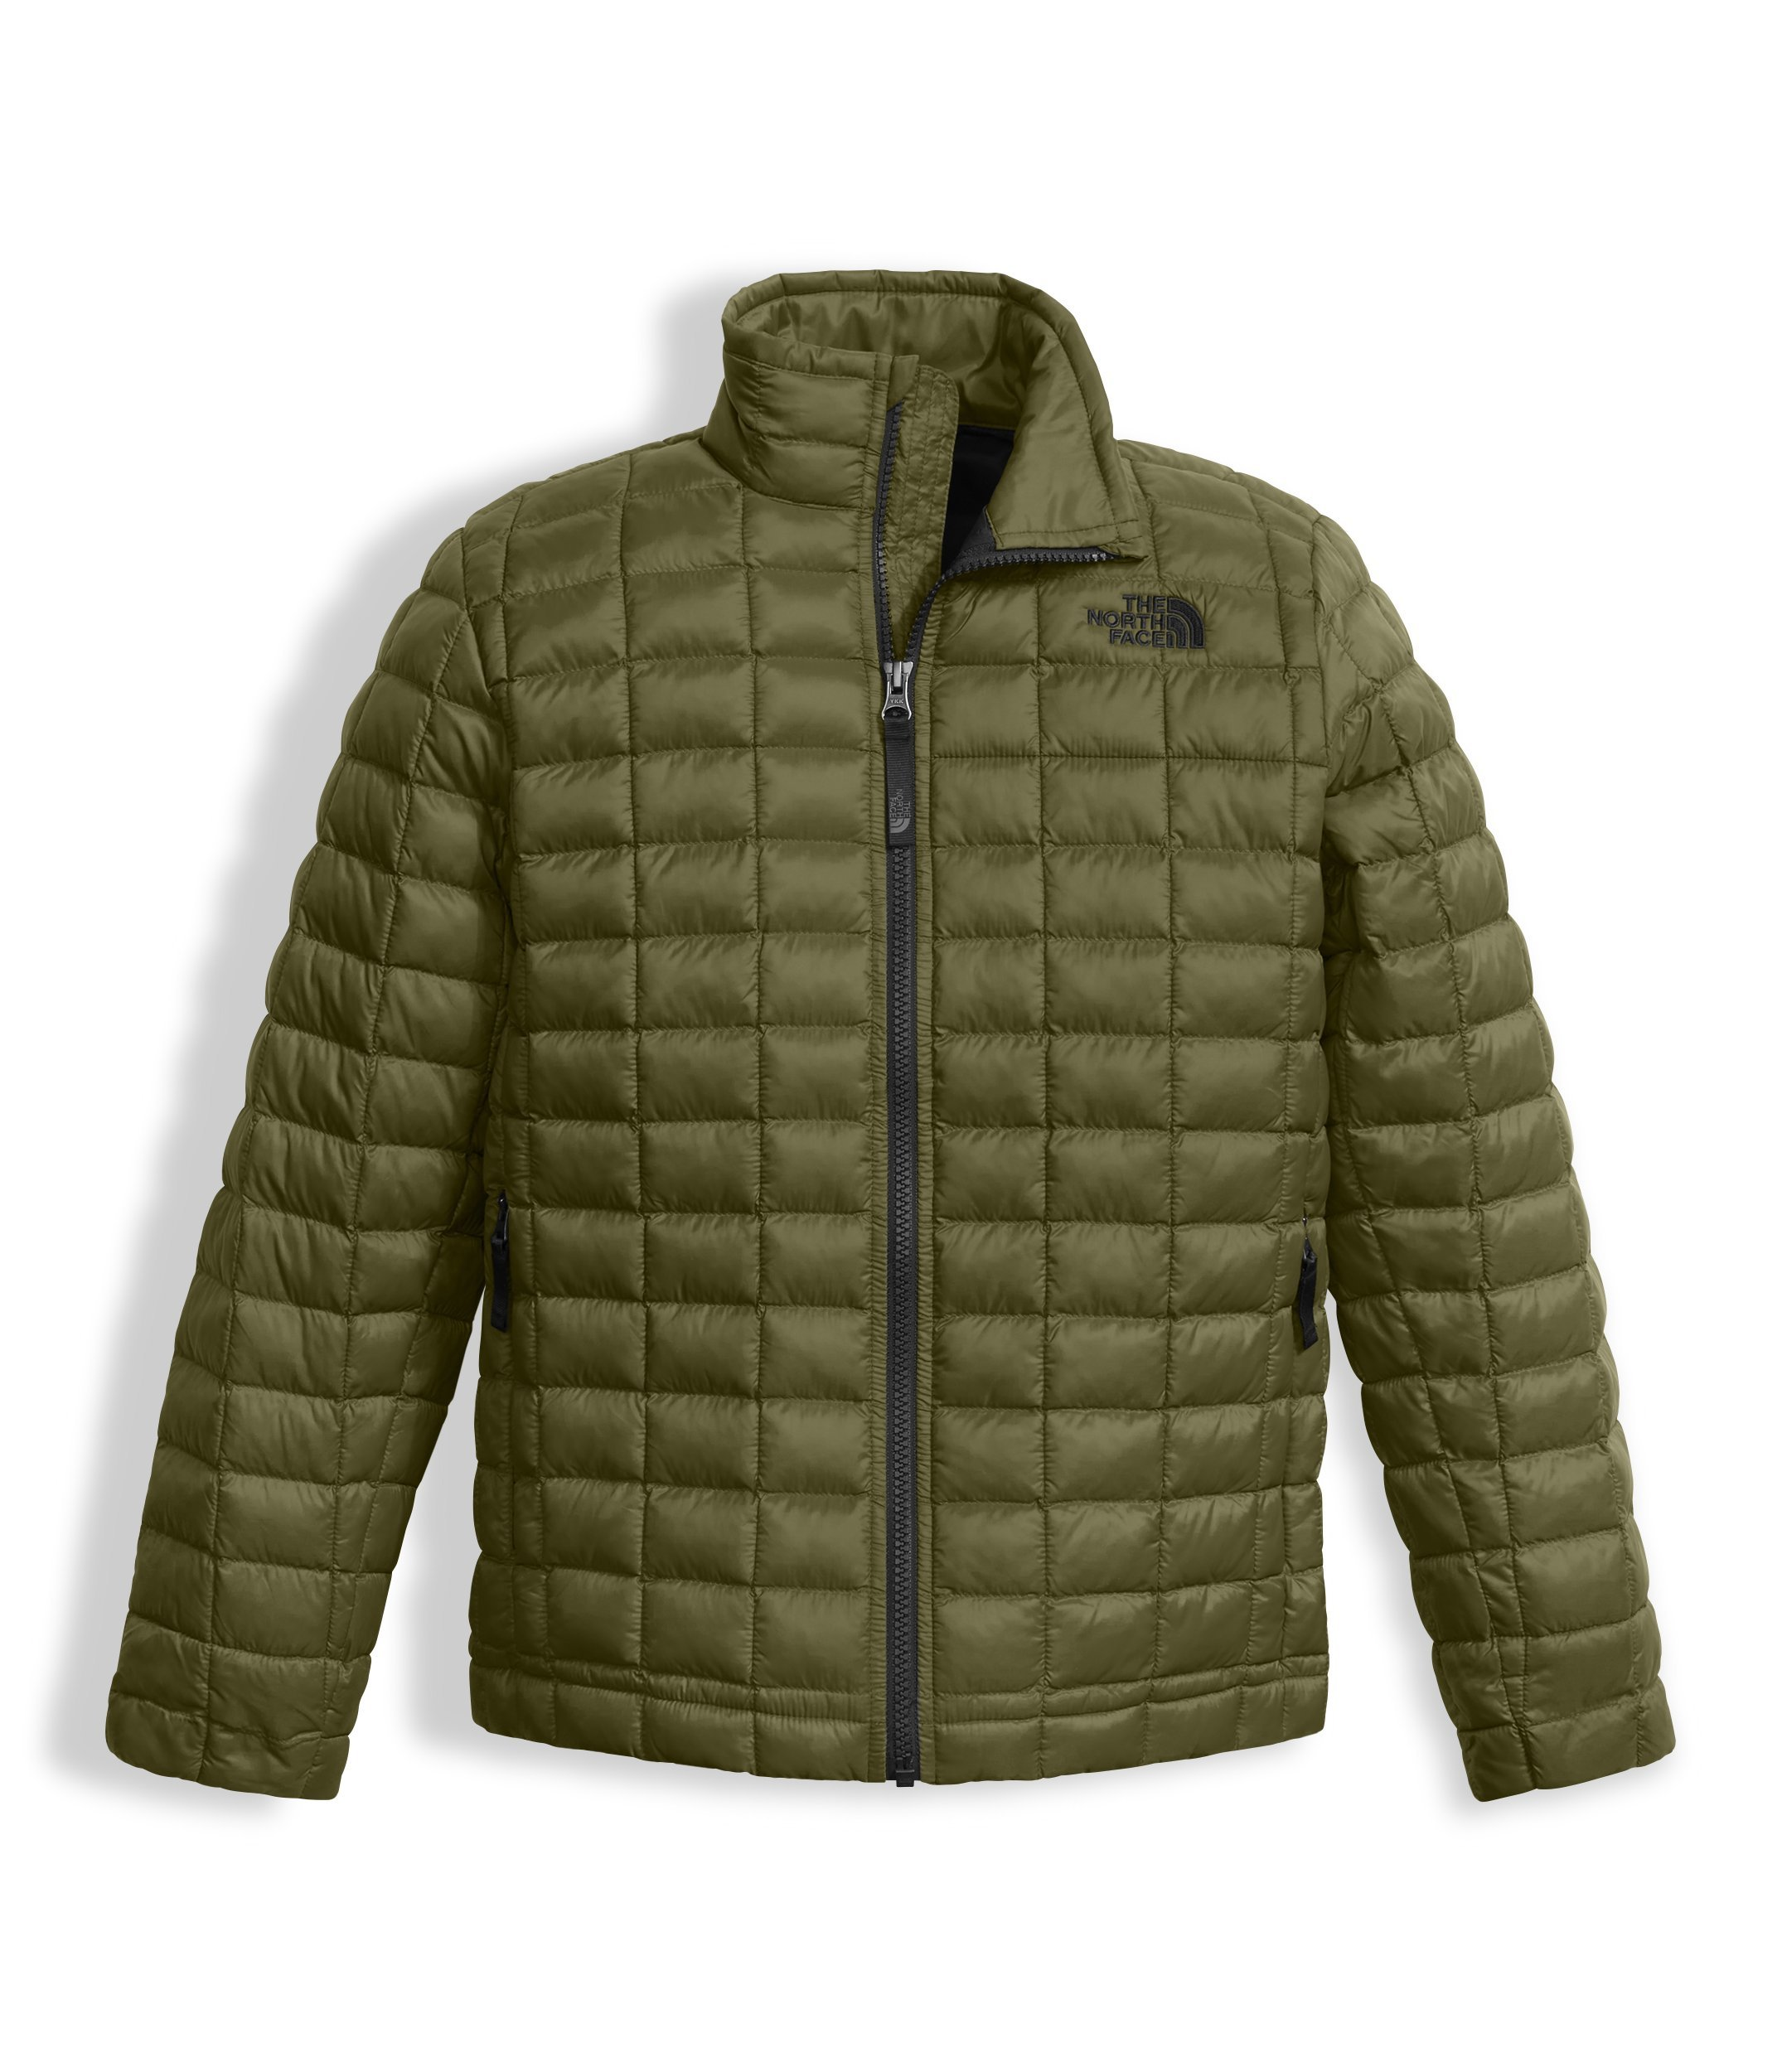 The North Face Boy's Thermoball Full Zip Jacket - Burnt Olive Green - M (Past Season) by The North Face